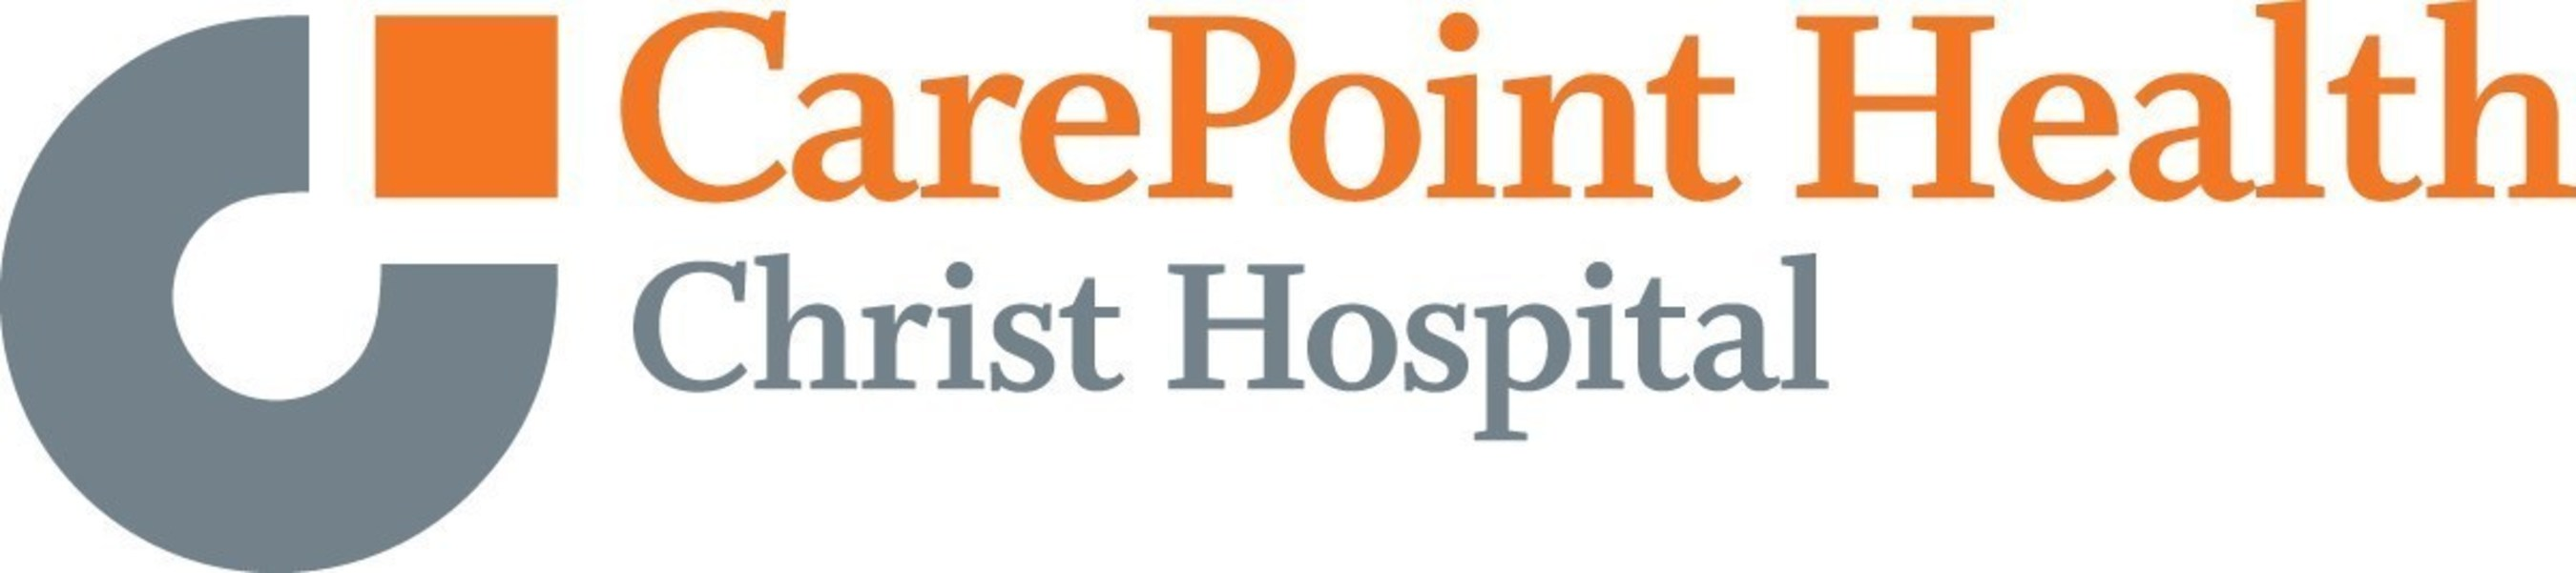 CarePoint Health - Christ Hospital Receives Get With The Guidelines-Stroke Gold Plus Quality